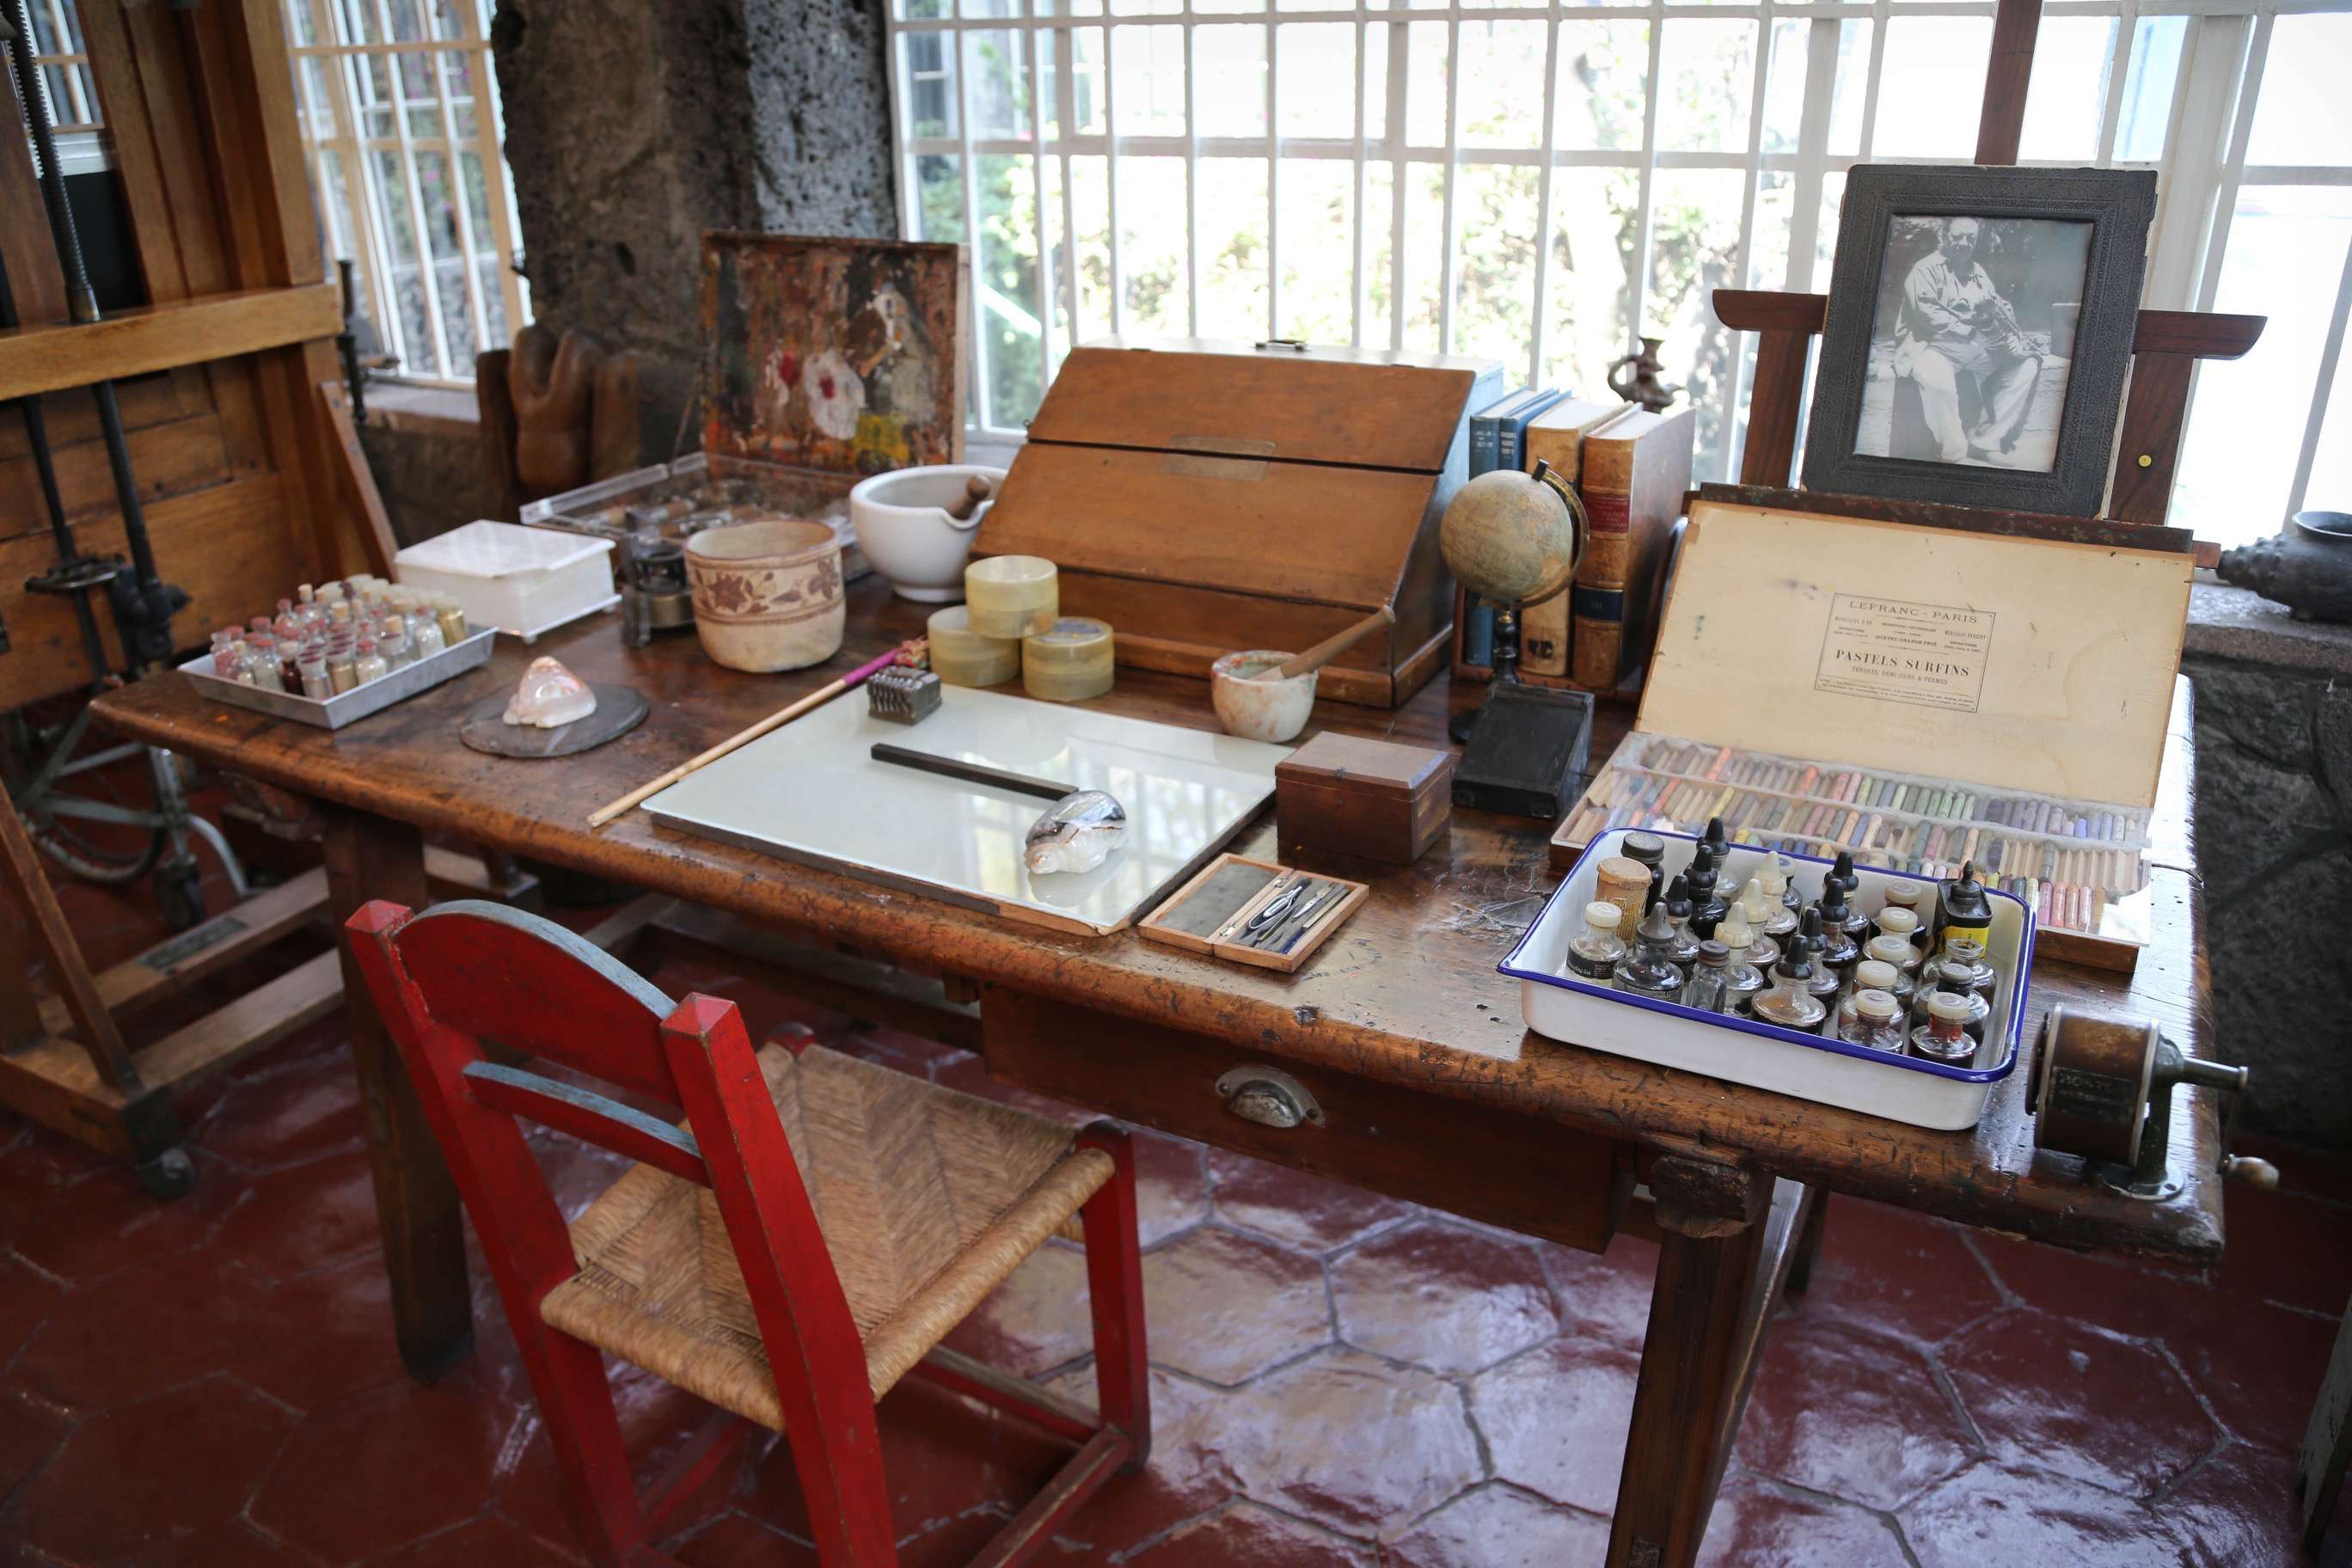 A working area of Frida Kahlo's studio at Casa Azul.